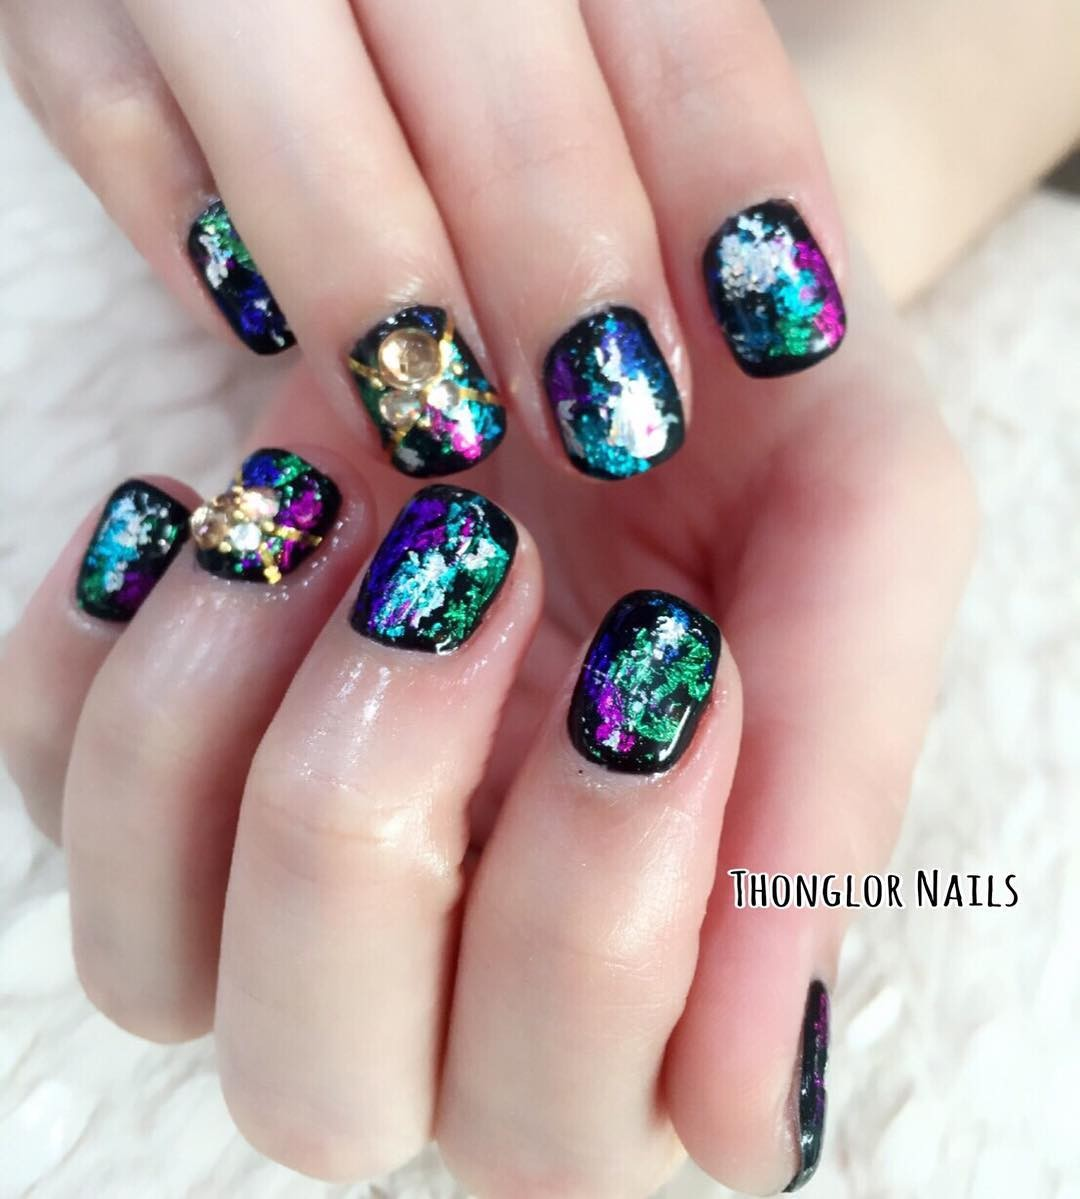 Thonglor Nails ทองหล่อ